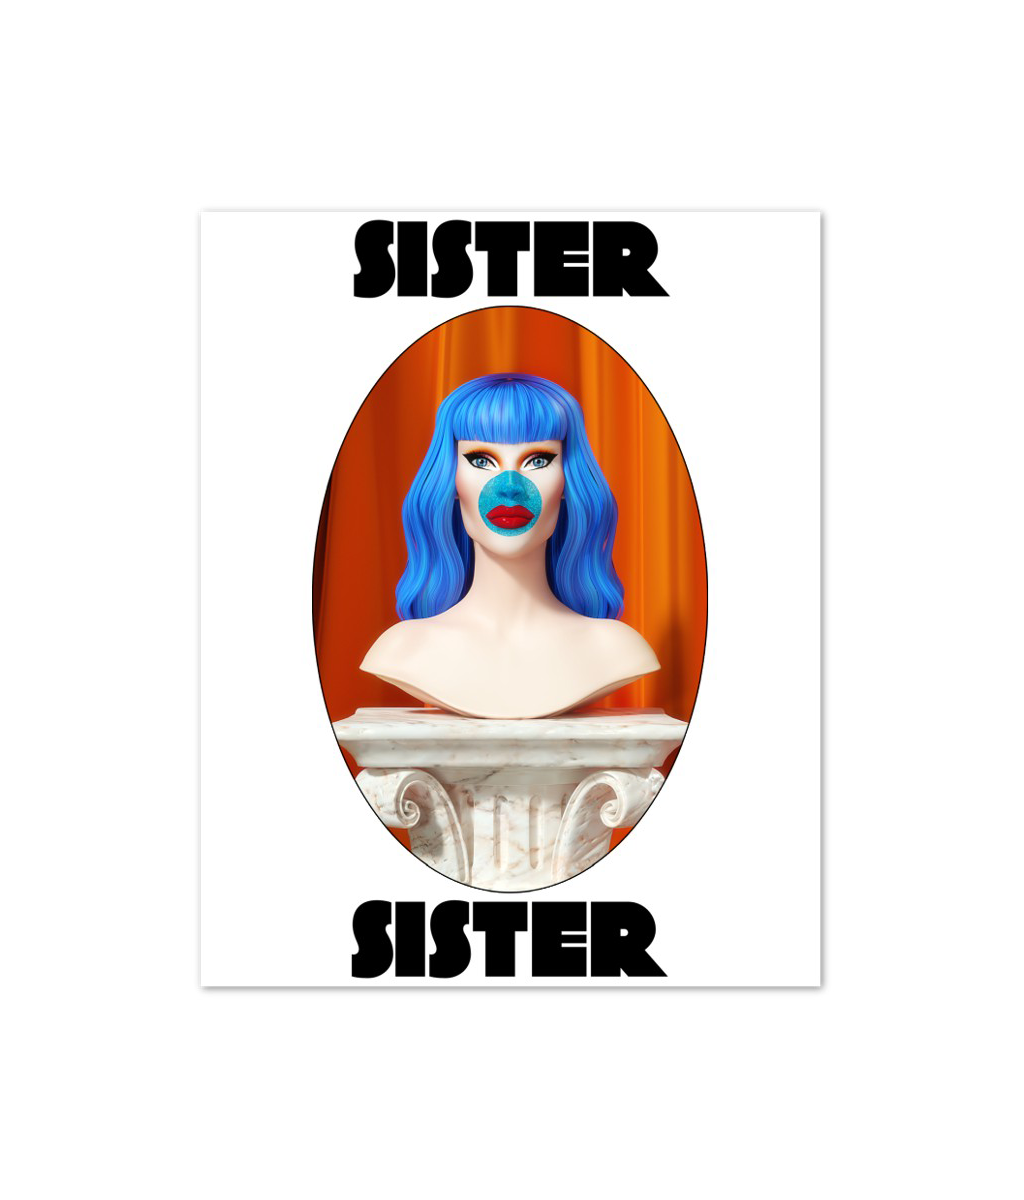 Sister Sister - Signed Bust Print